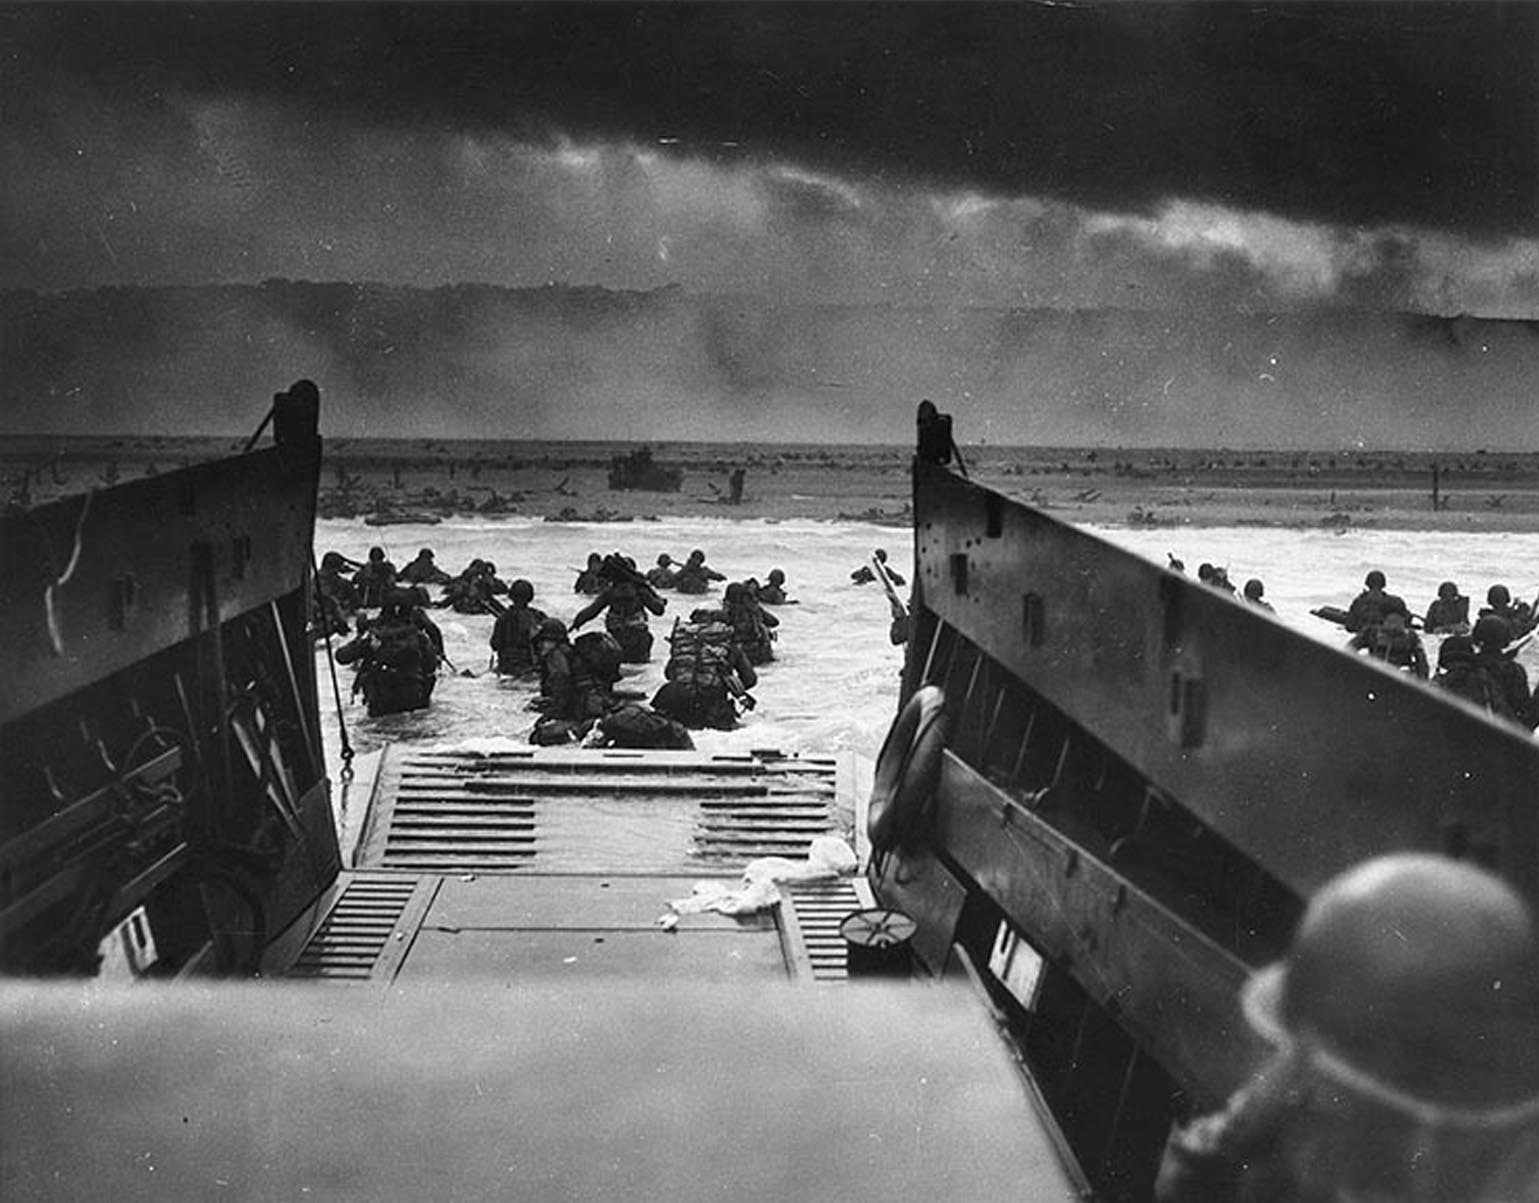 This photograph from the National Archives taken on June 6, 1944, shows US Army troops wading ashore at Omaha Beach in north-western France, during the D-Day invasion. (Photo by STF/AFP/Getty Images)